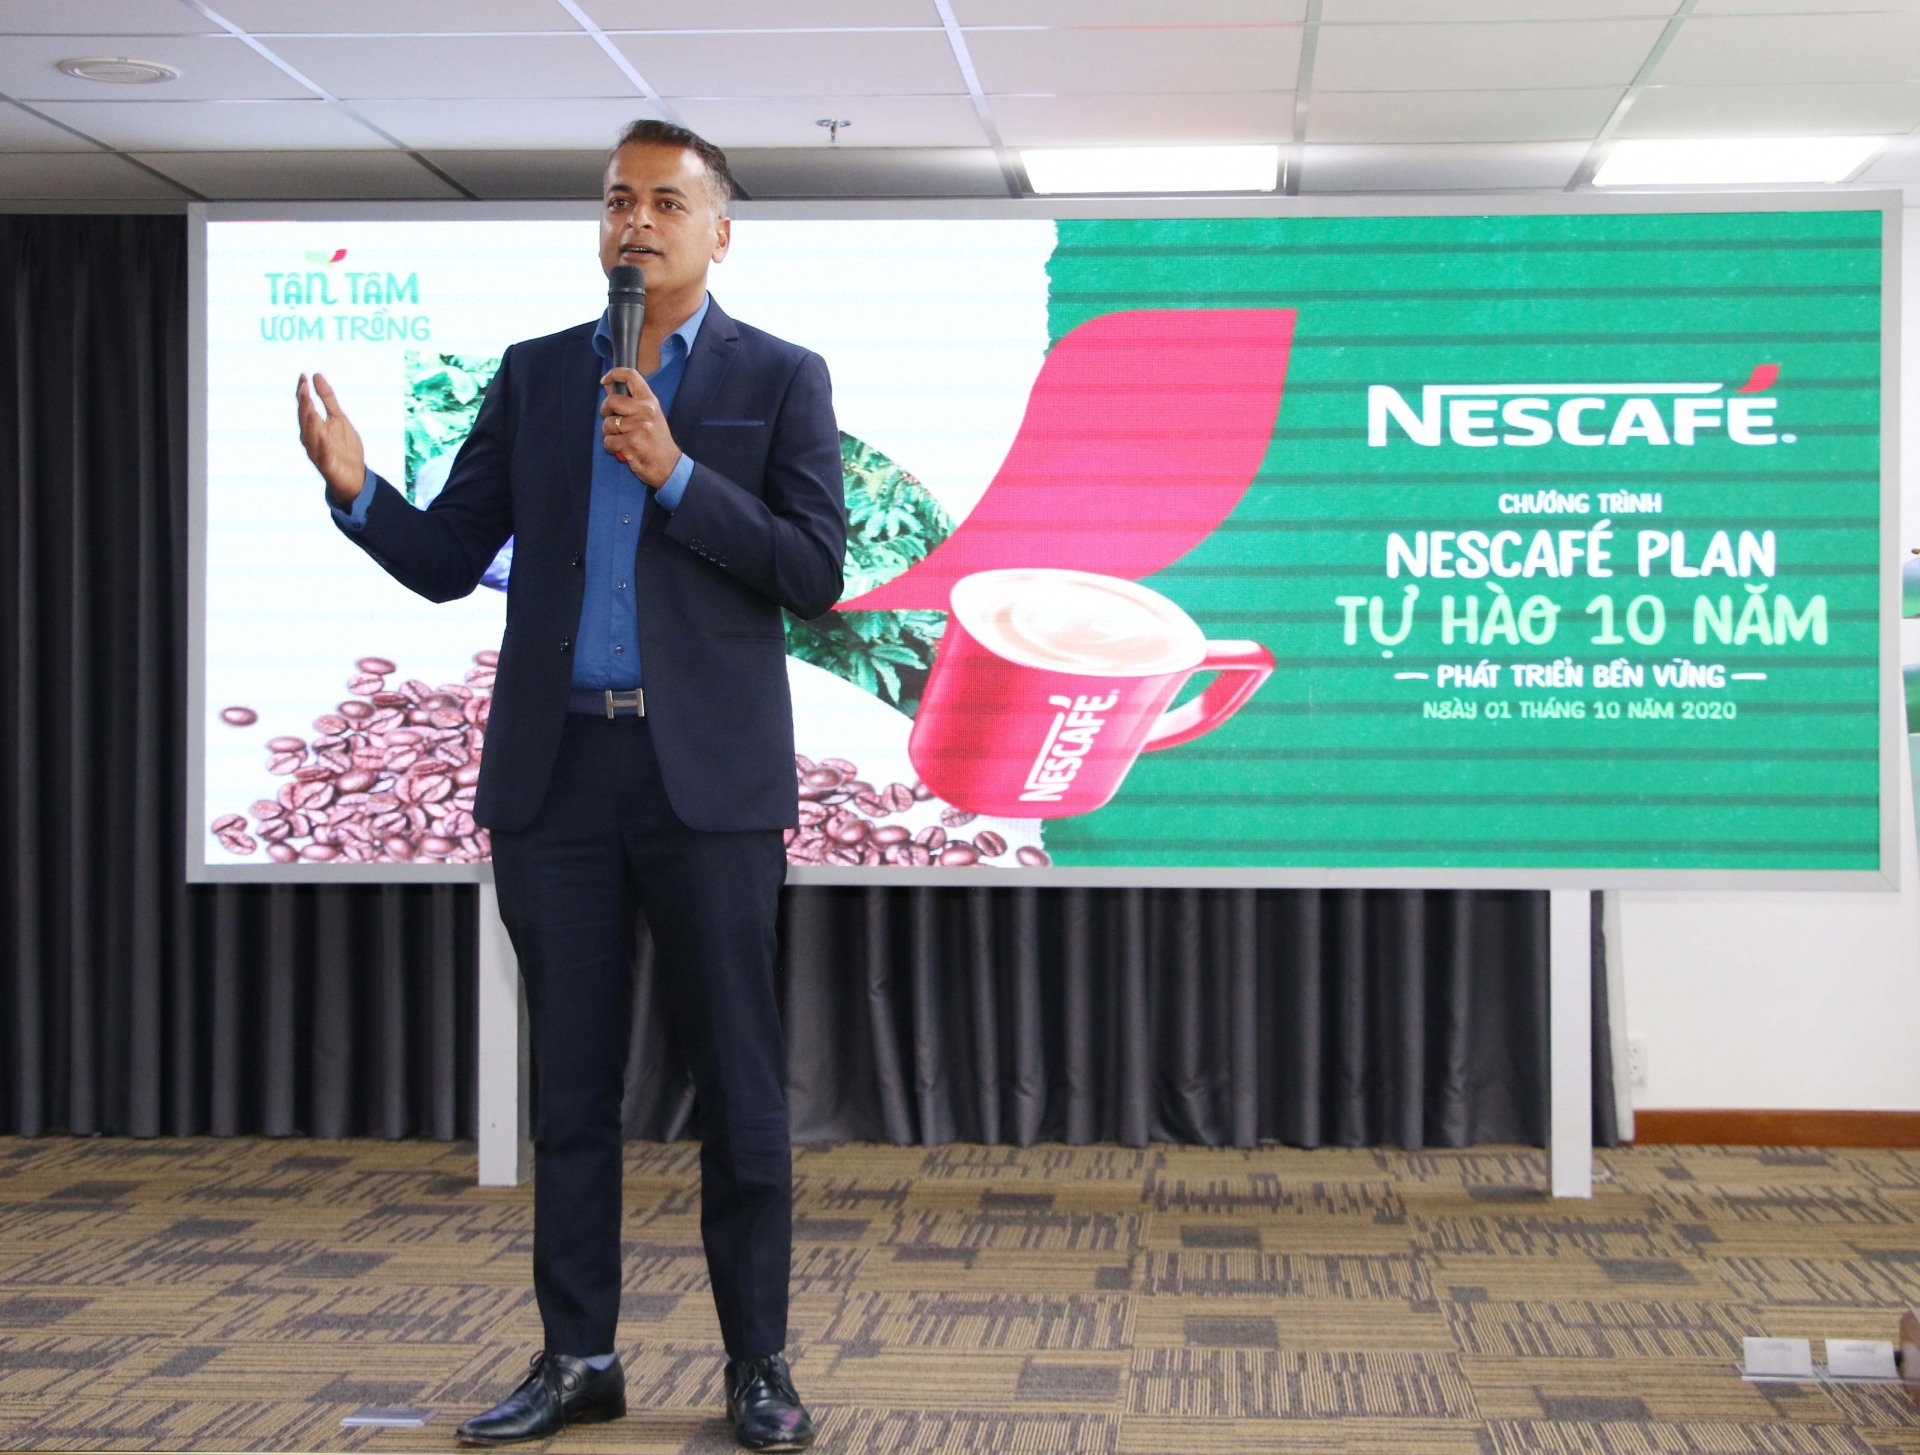 nescafe plan in vietnam marks 10 years of sustainable coffee production